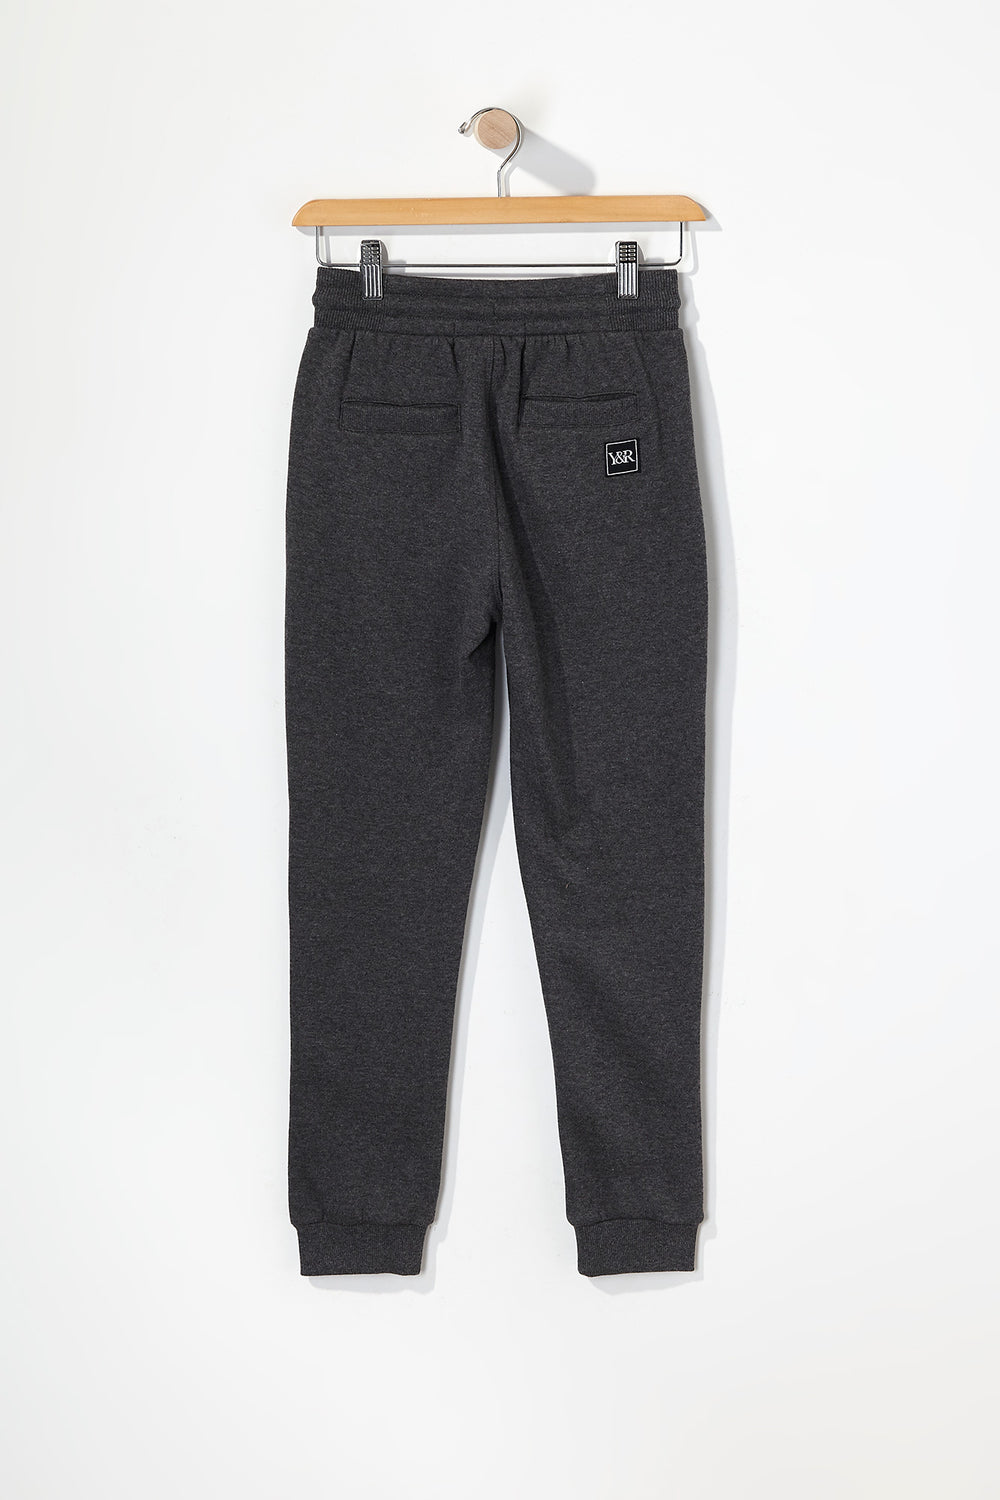 Young & Reckless Boys Neon Accent Joggers Charcoal